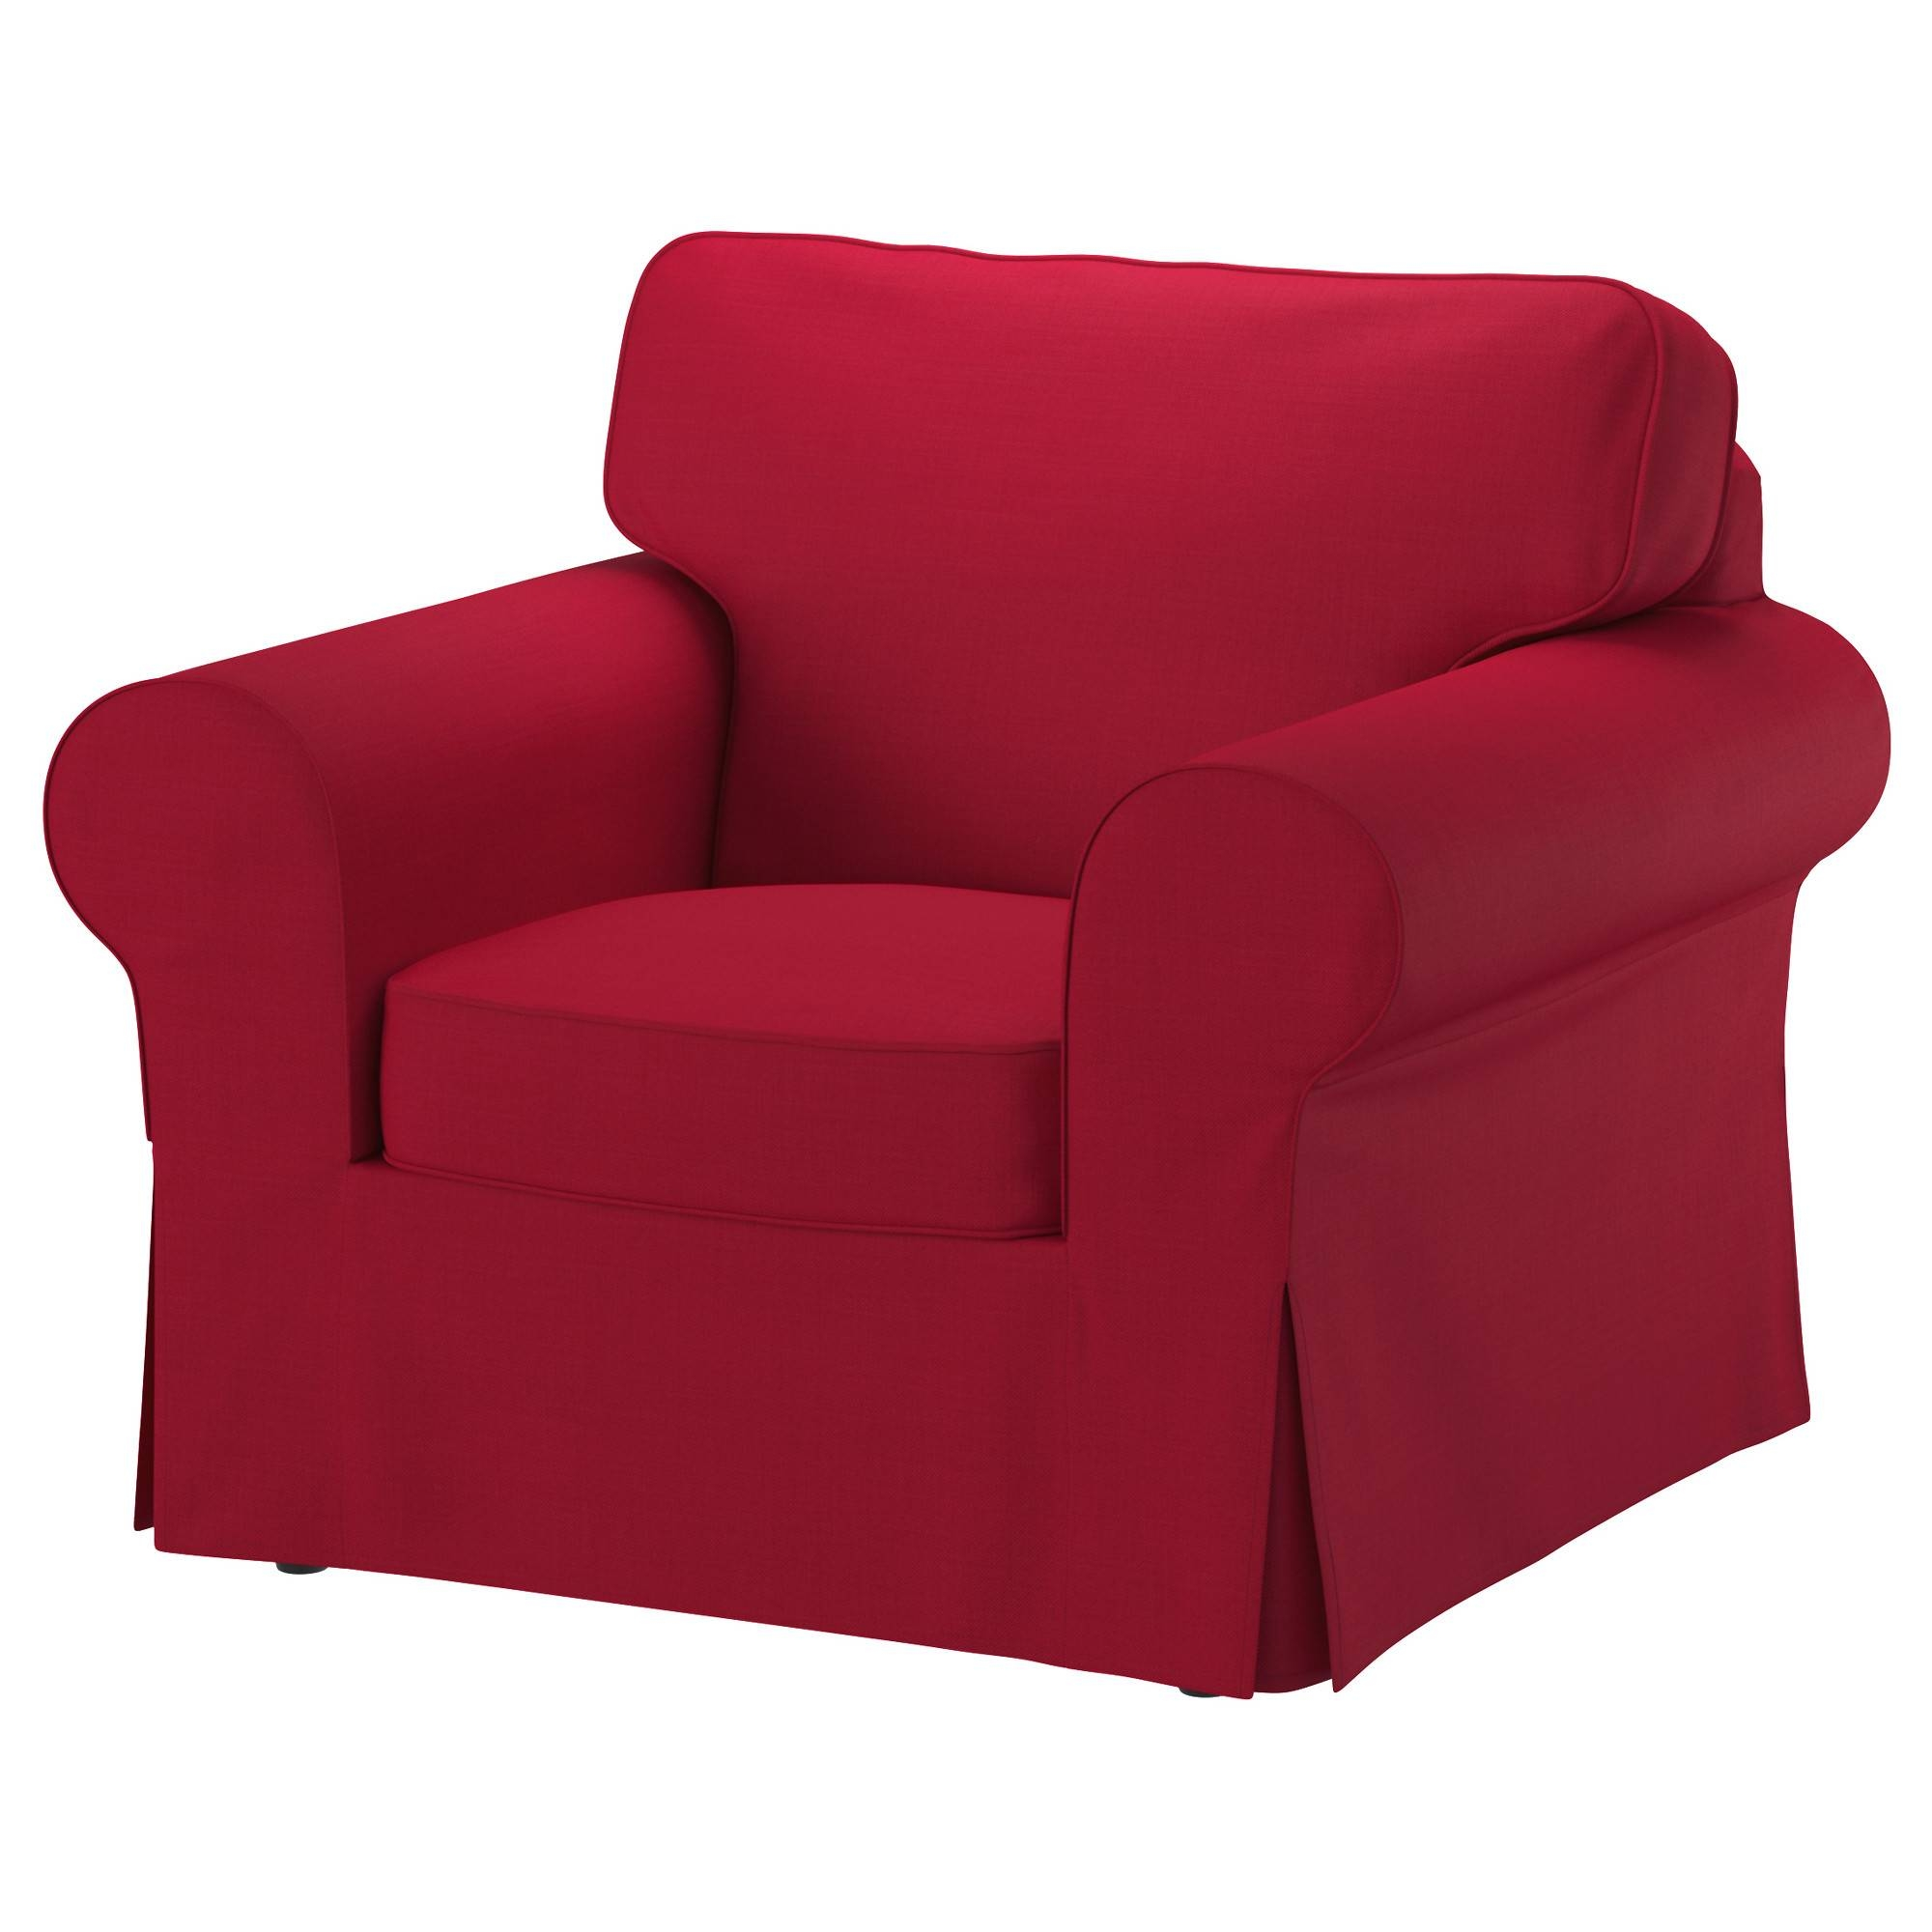 Furniture: Give Your Sofa Fresh New Look With Ikea Ektorp Chair within Heel Chair Sofas (Image 14 of 30)